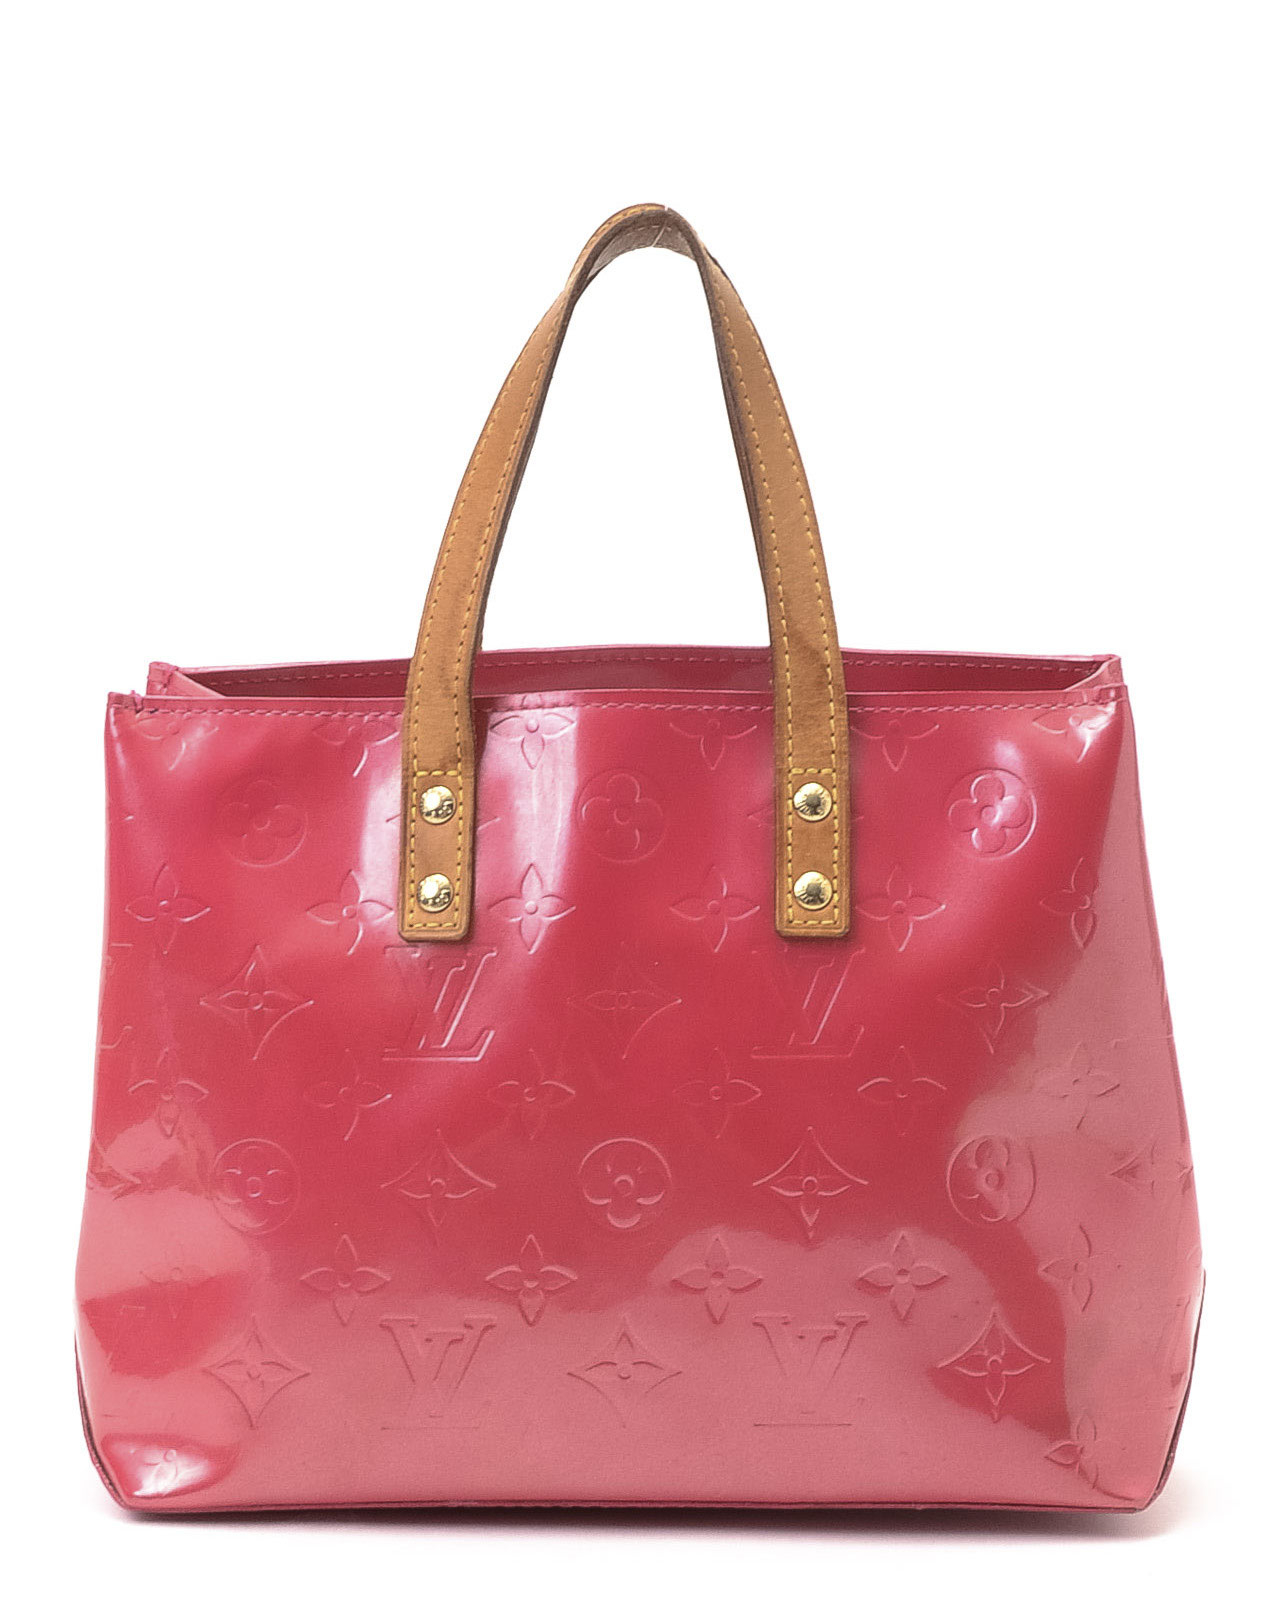 51601838783e Lyst - Louis Vuitton Pink Patent Leather Tote in Red